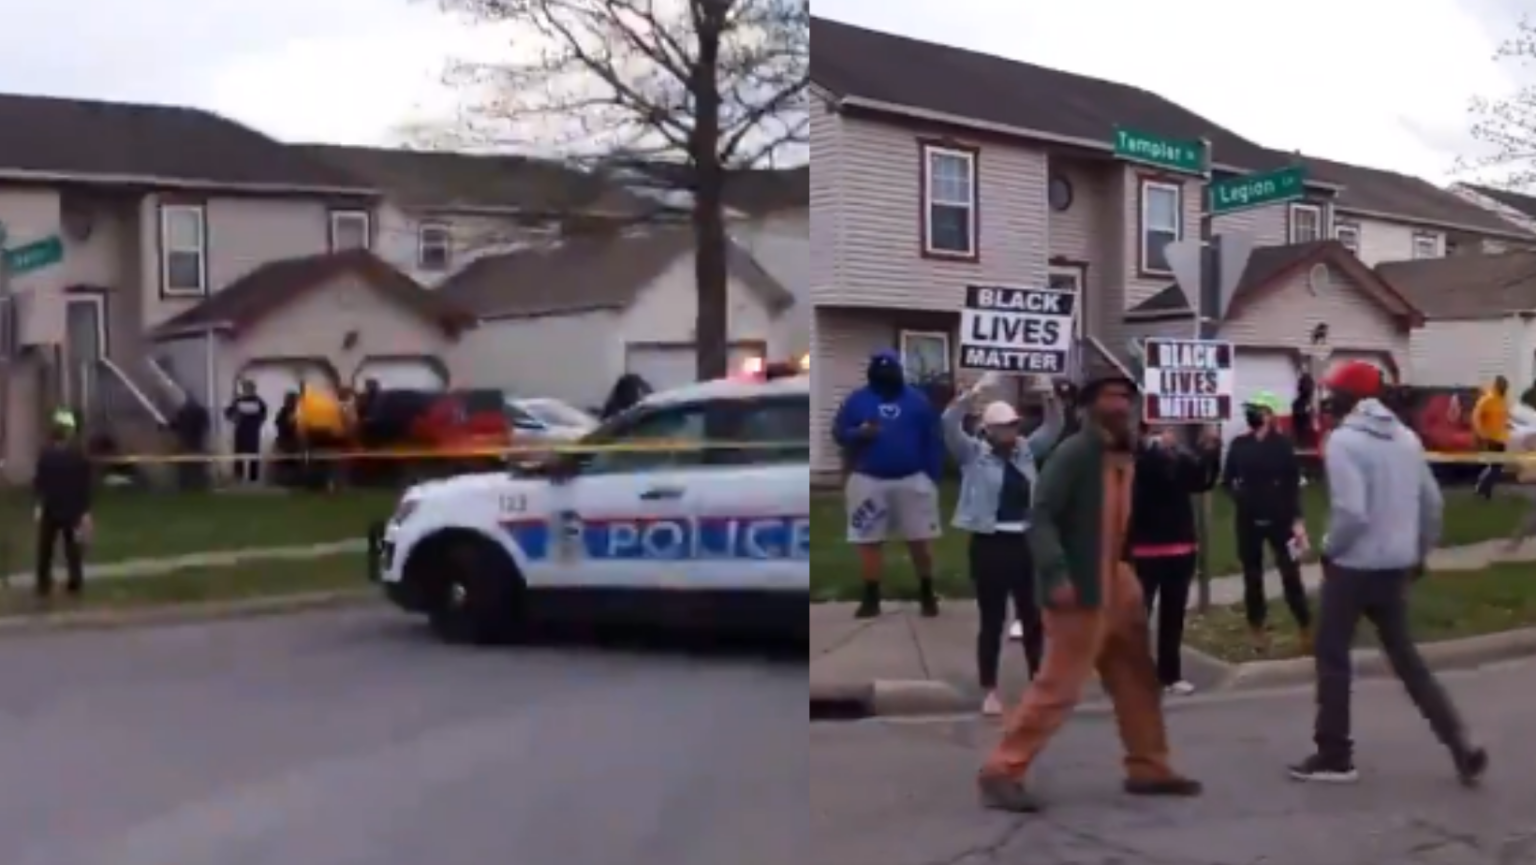 Caught on camera: Black Lives Matter activists threaten police: 'You shoot us, we shoot you'